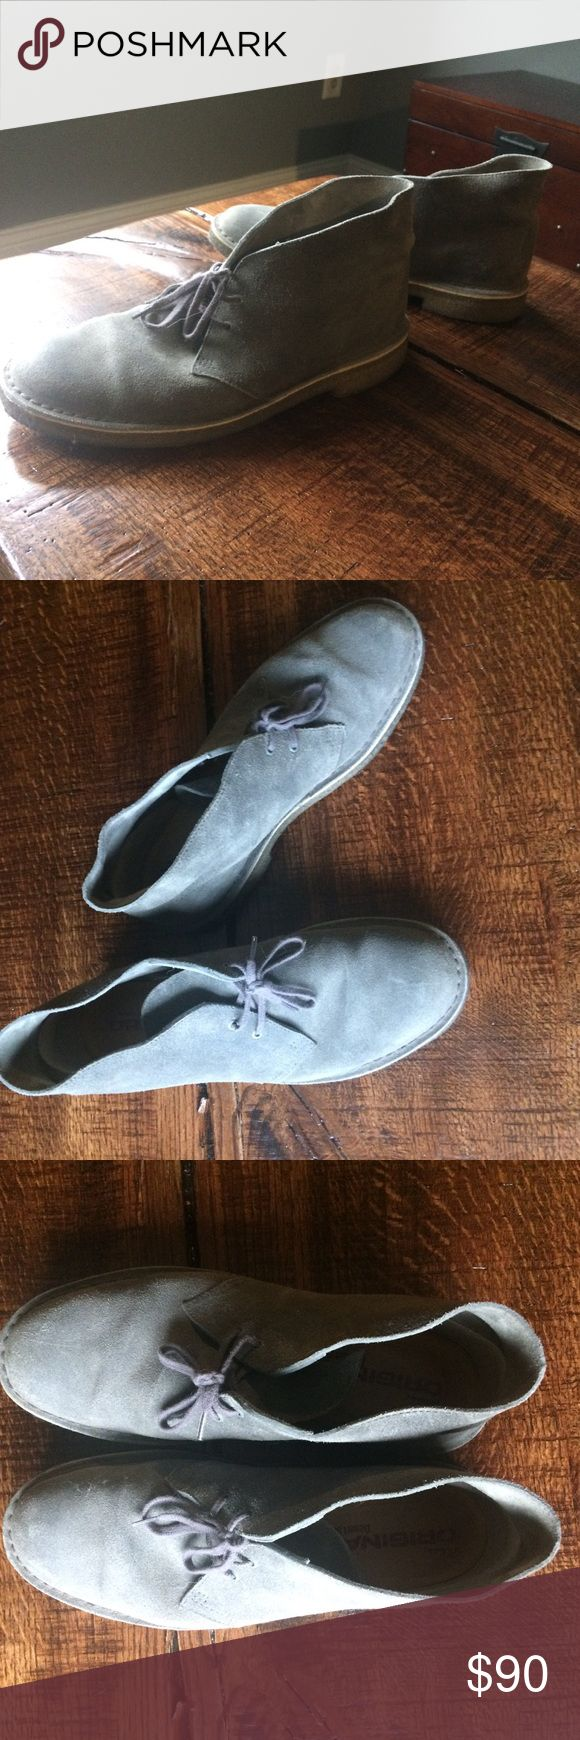 """Clark's Originals Men's Desert Boot, Grey 10 Clark's Originals Men's Desert Boot, in Grey distressed, size 10. EUC, little signs of wear, non smoking home.  Leather Imported Crepe sole Shaft measures approximately 4.5"""" from arch Imported Crepe sole Stabilizing suede-lined heel counter Platform measures approximately 0.5"""" Heel measures approximately 1"""" Clarks Shoes Boots"""